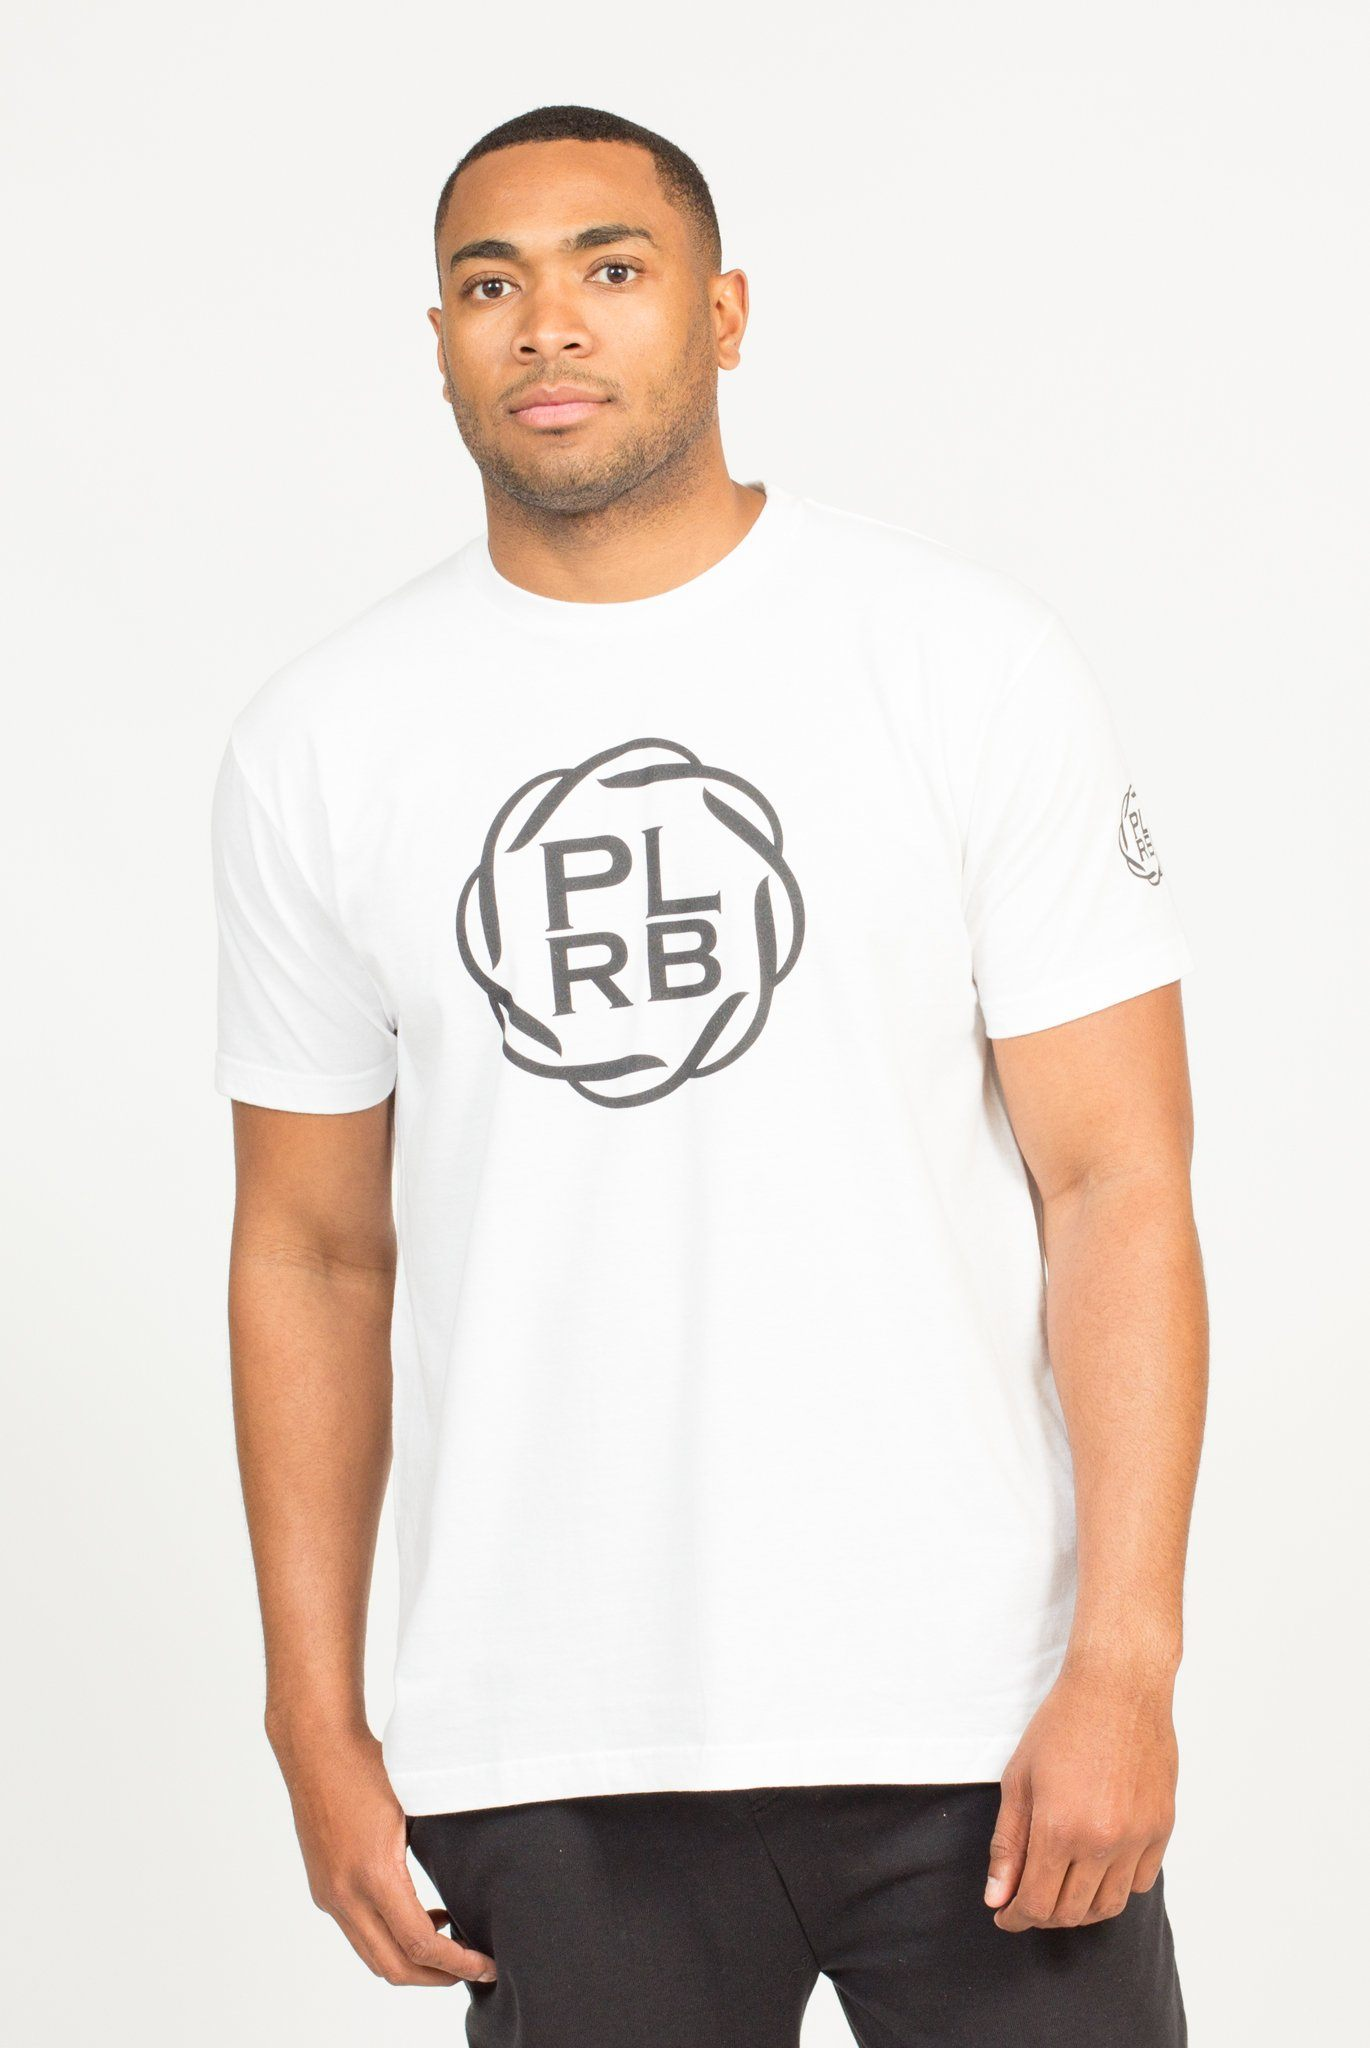 PLRB LOGO T-SHIRT IN WHITE | Poor Little Rich Boy Clothing